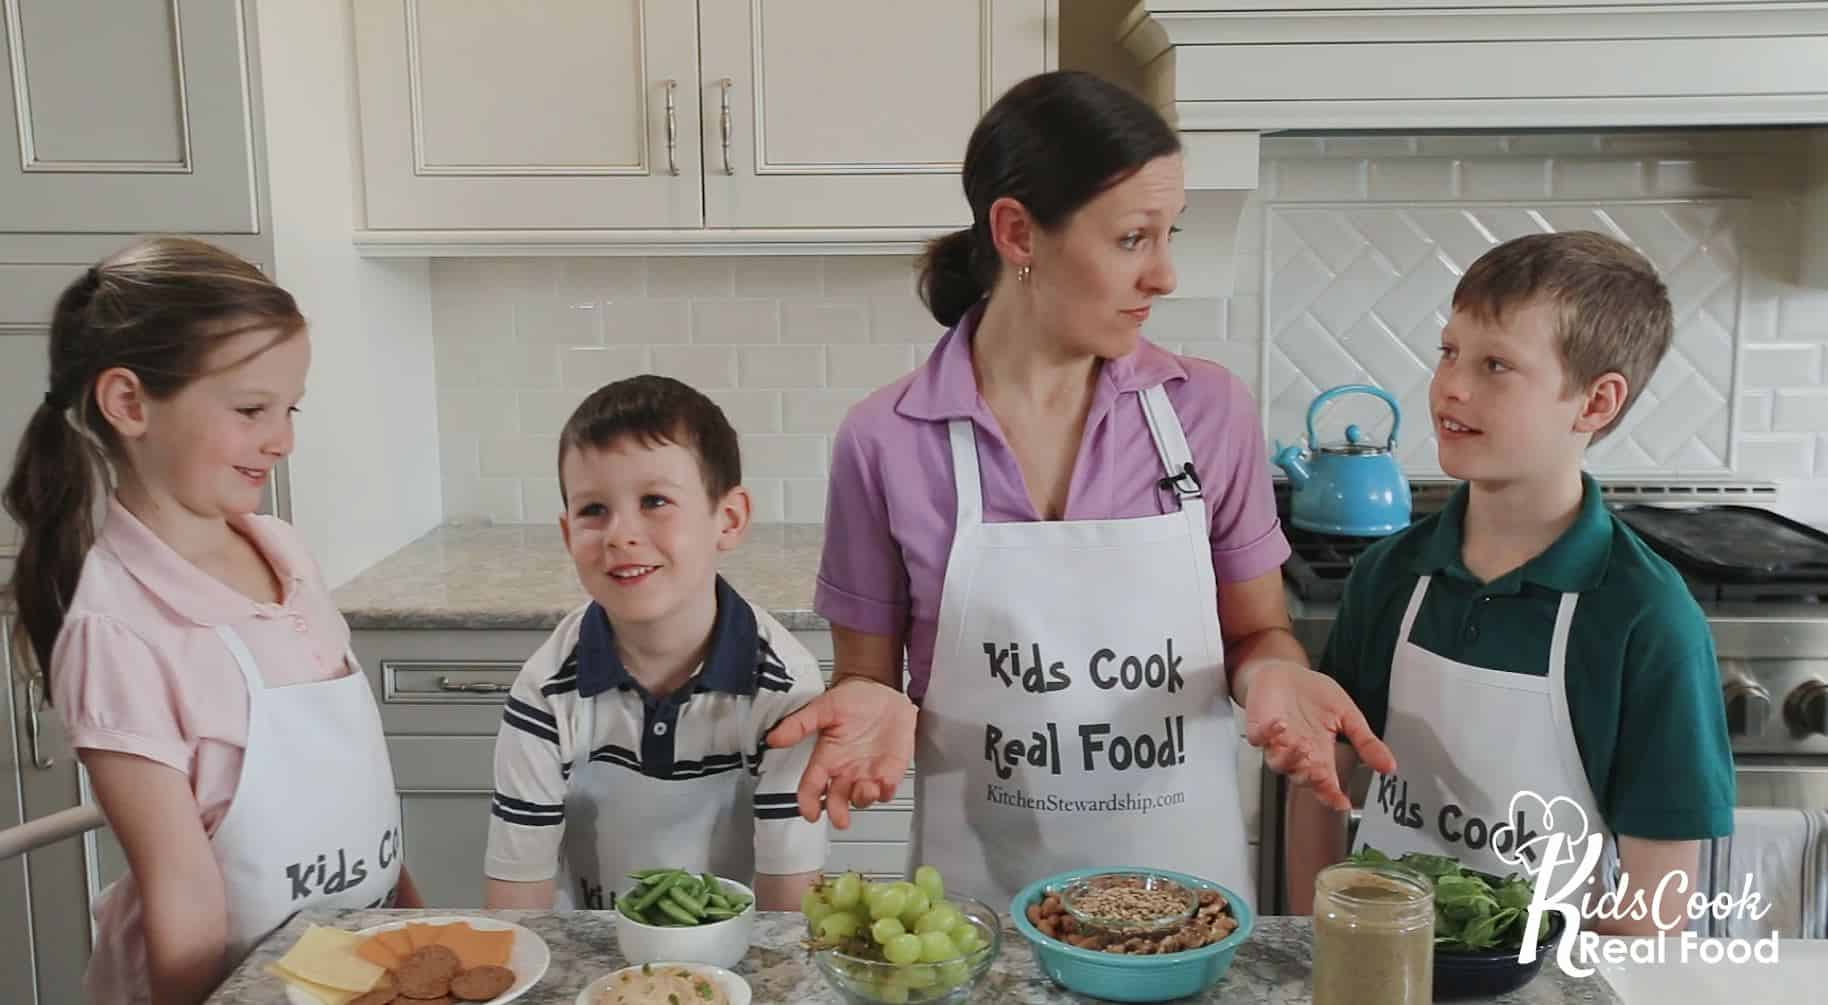 healthy snacks videos teach nutrition and recipes